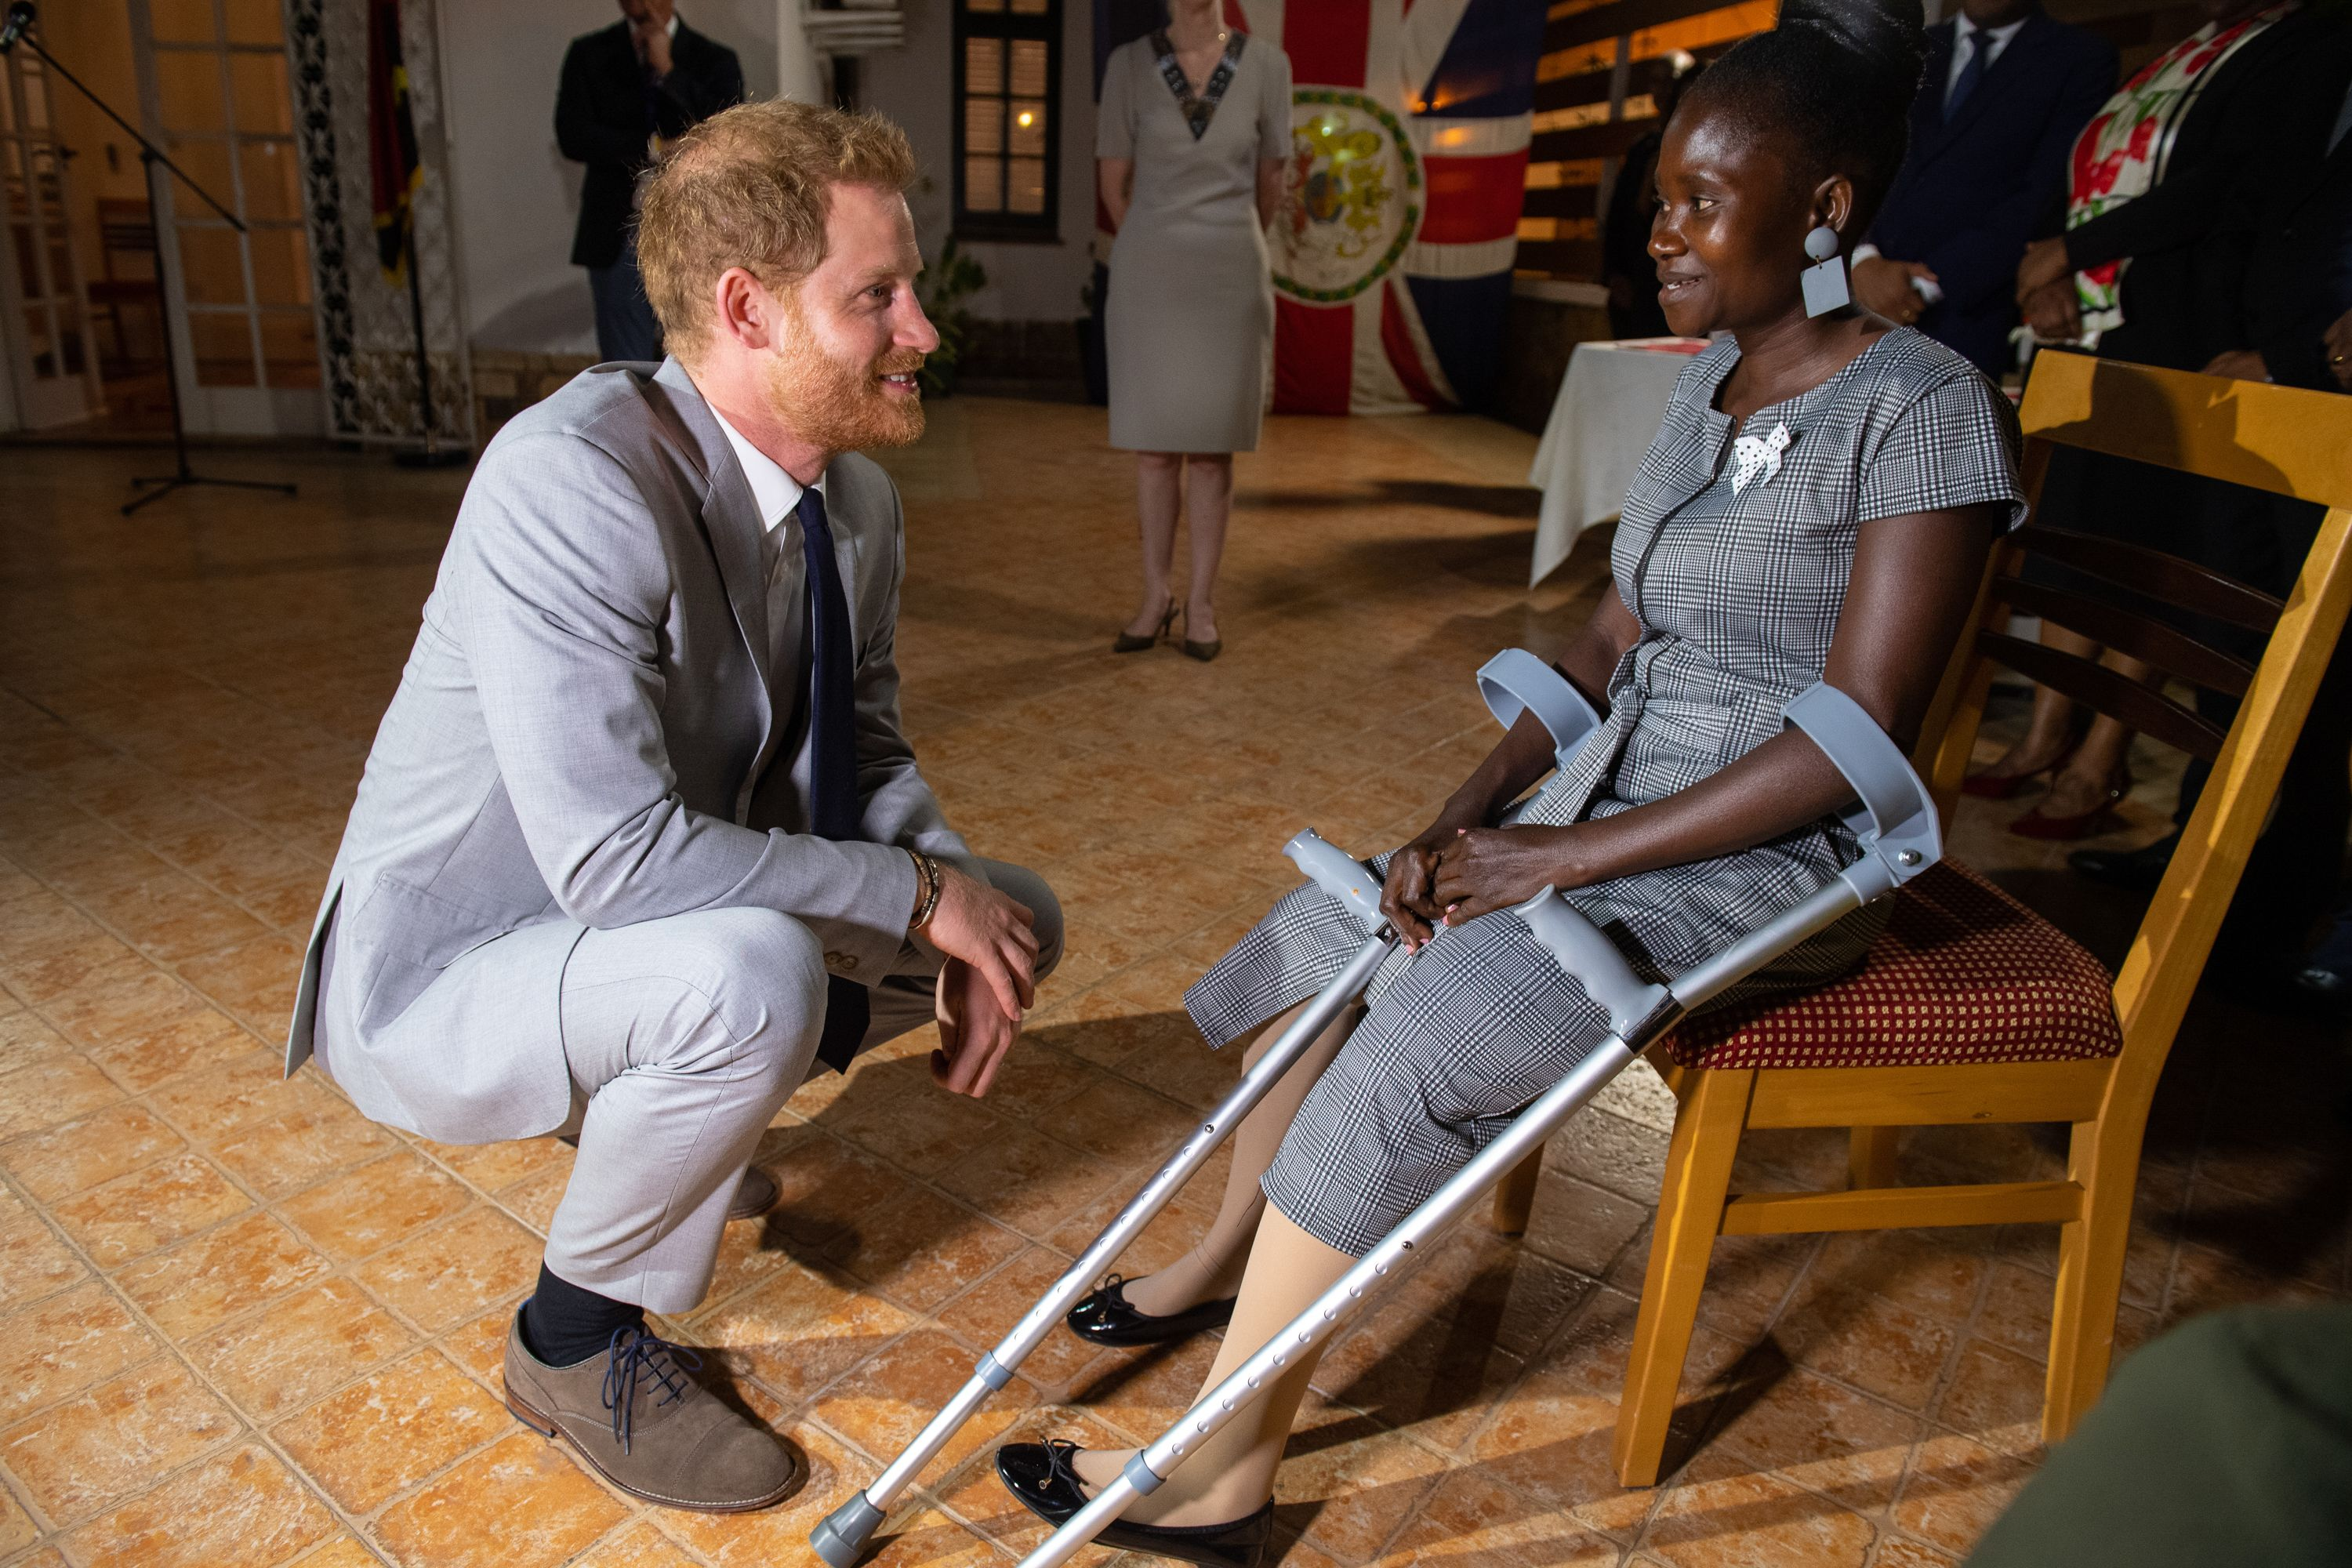 Prince Harry reunites with minefield survivor who famously met Princess Diana